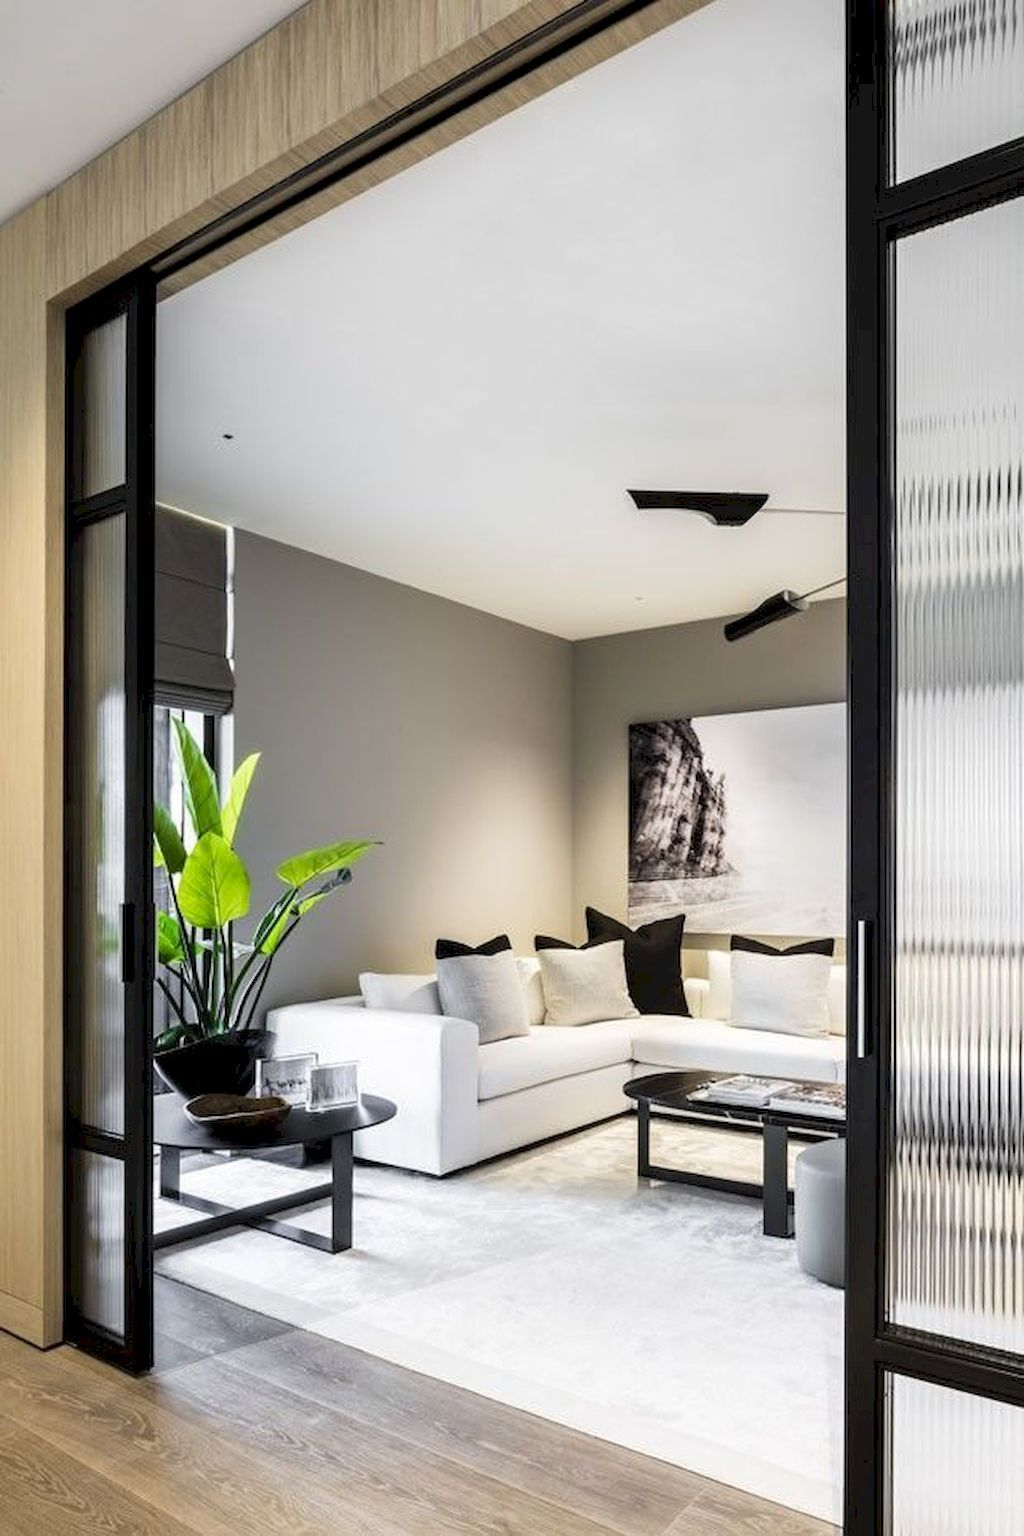 Adorable 99 Creative Living Room Design Ideas You Ll Want To Steal House Design Living Room Modern Home